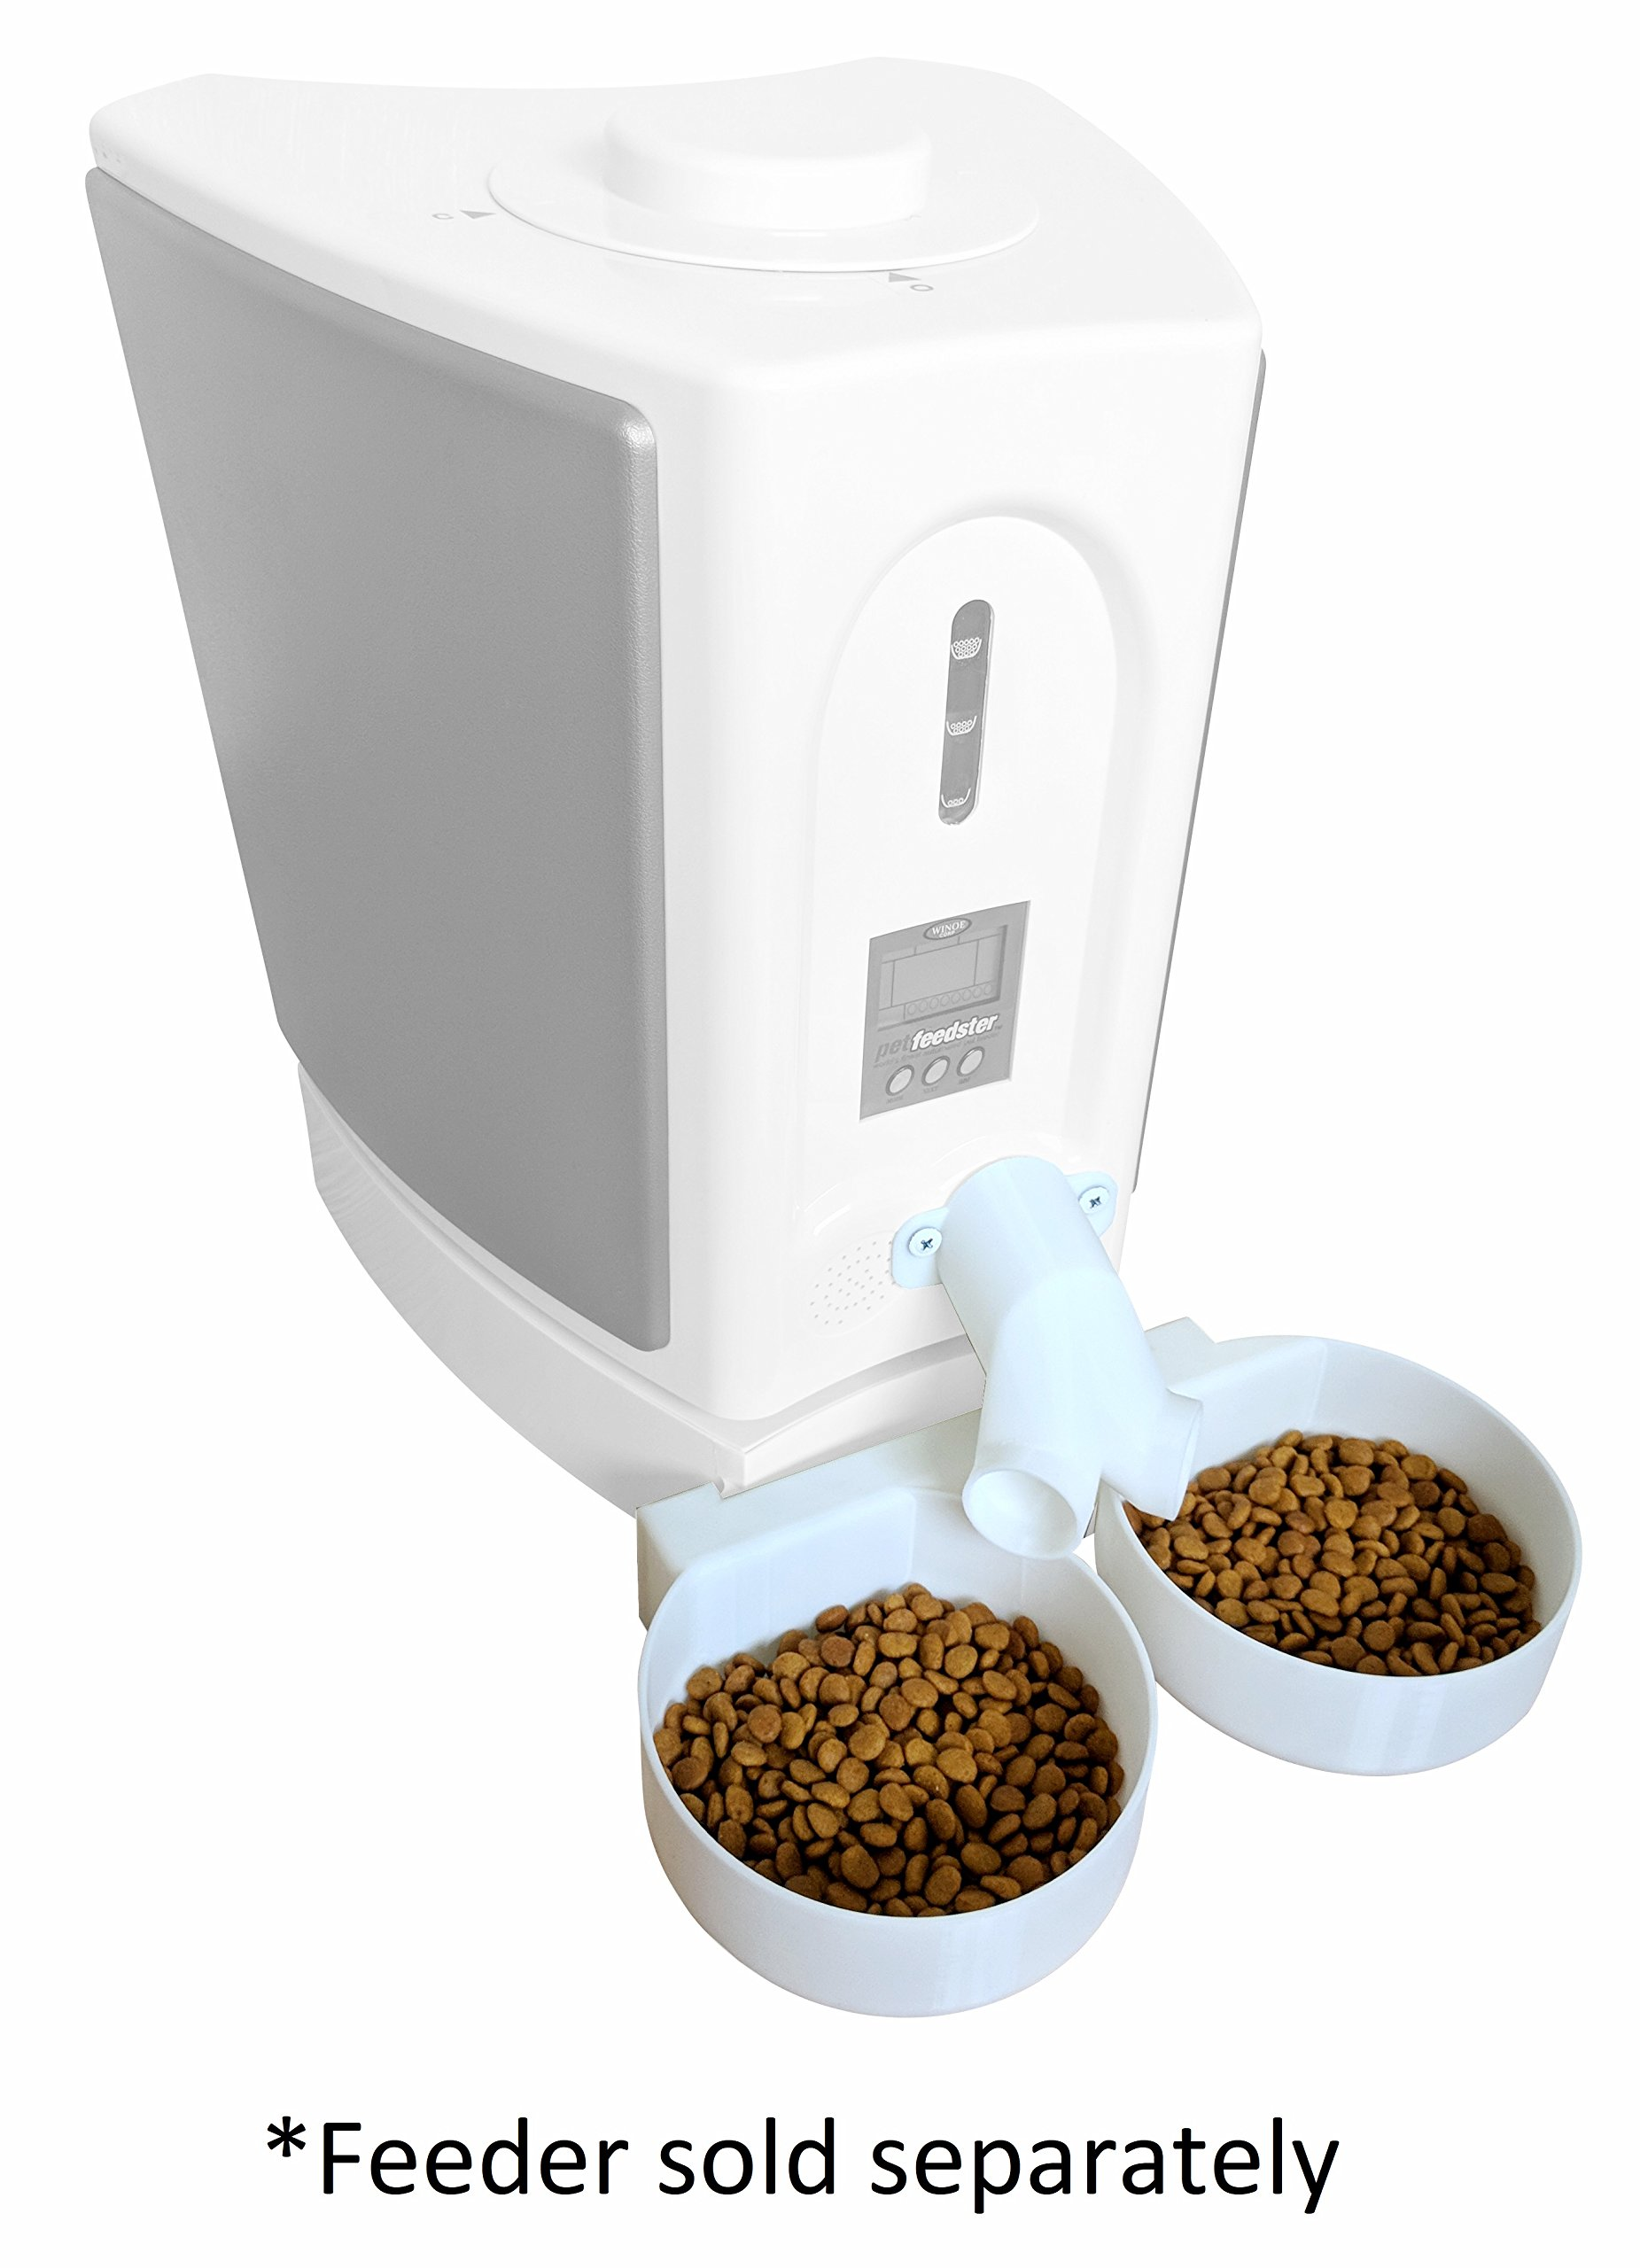 Precision 3D Prints Two-Way Splitter and Two Bowl Attachment - for New! Pet Feedster PF-10 PLUS CAT - Automated Pet Feeder for Cats